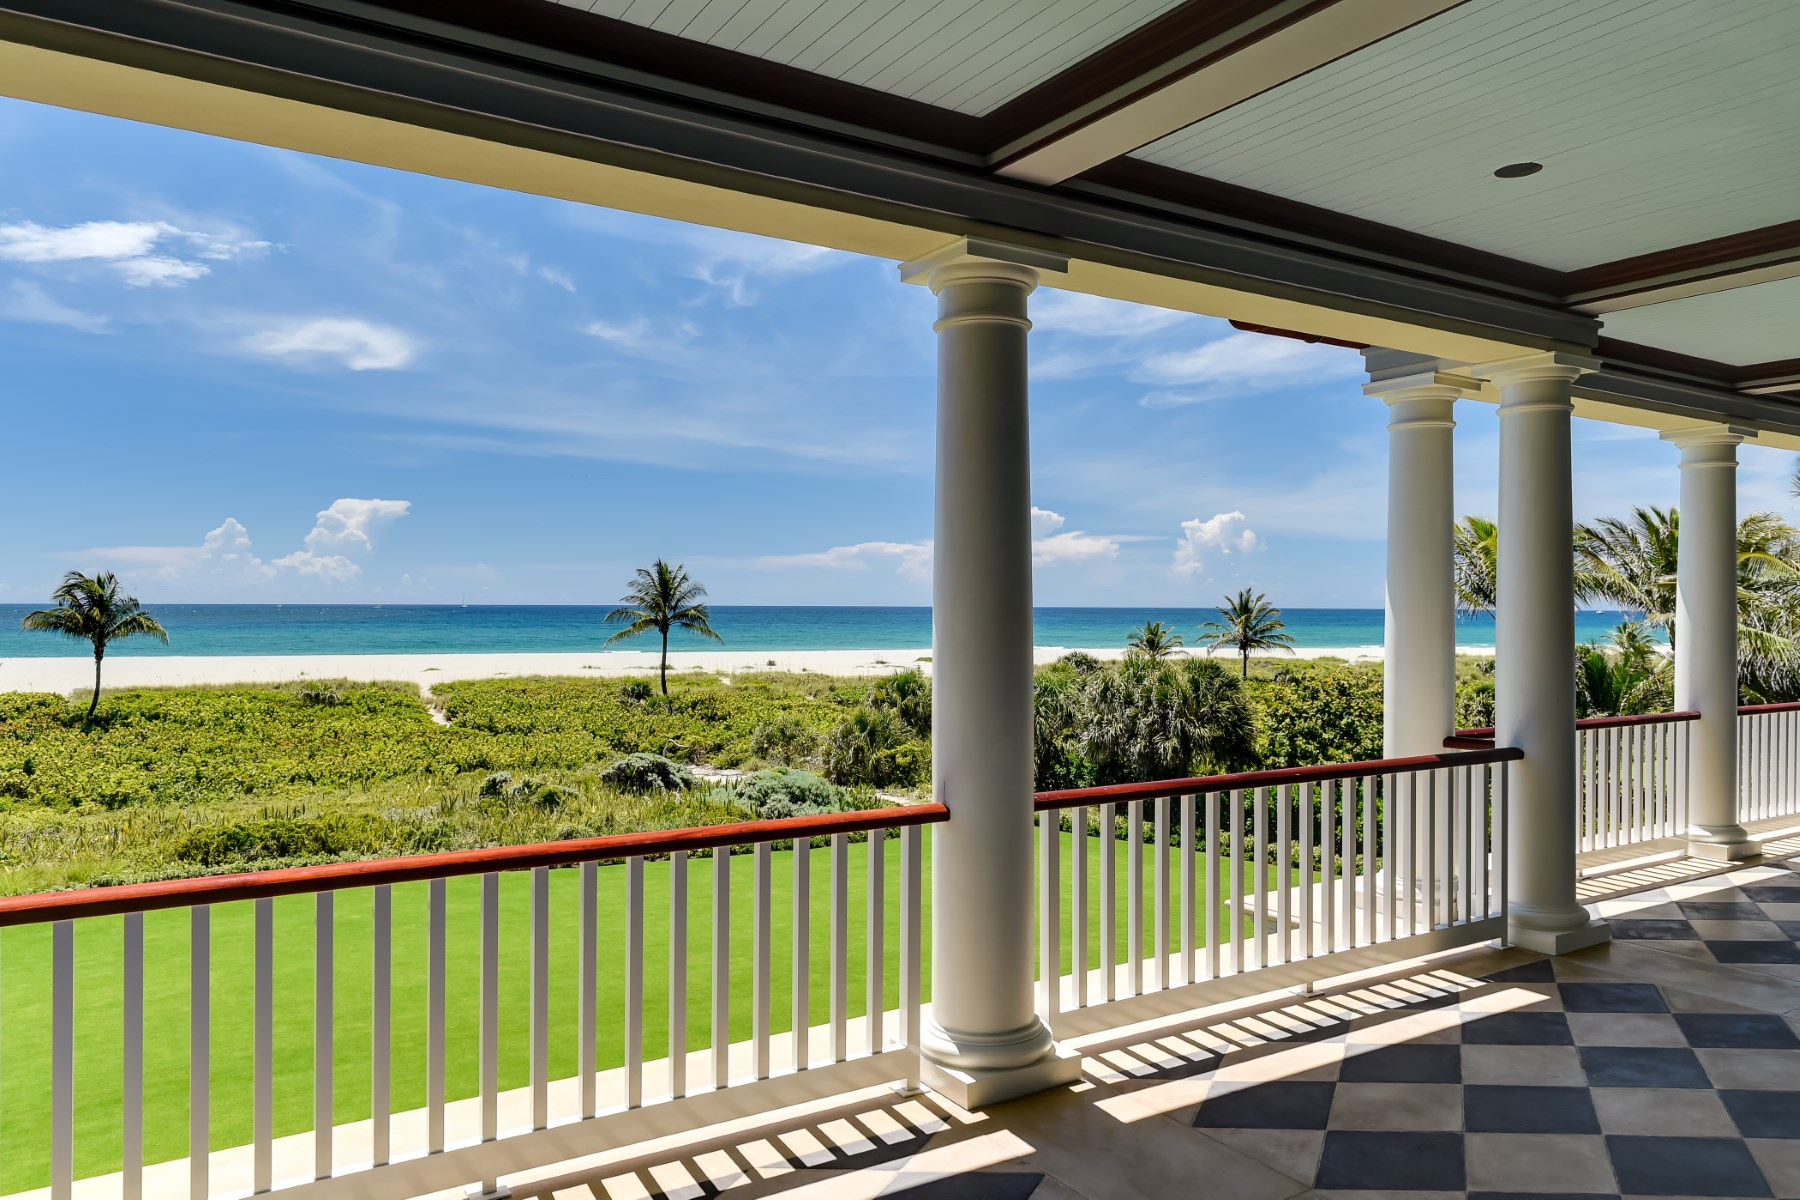 Moradia para Venda às Elegant New Oceanfront Estate North End, Palm Beach, Florida, 33480 Estados Unidos